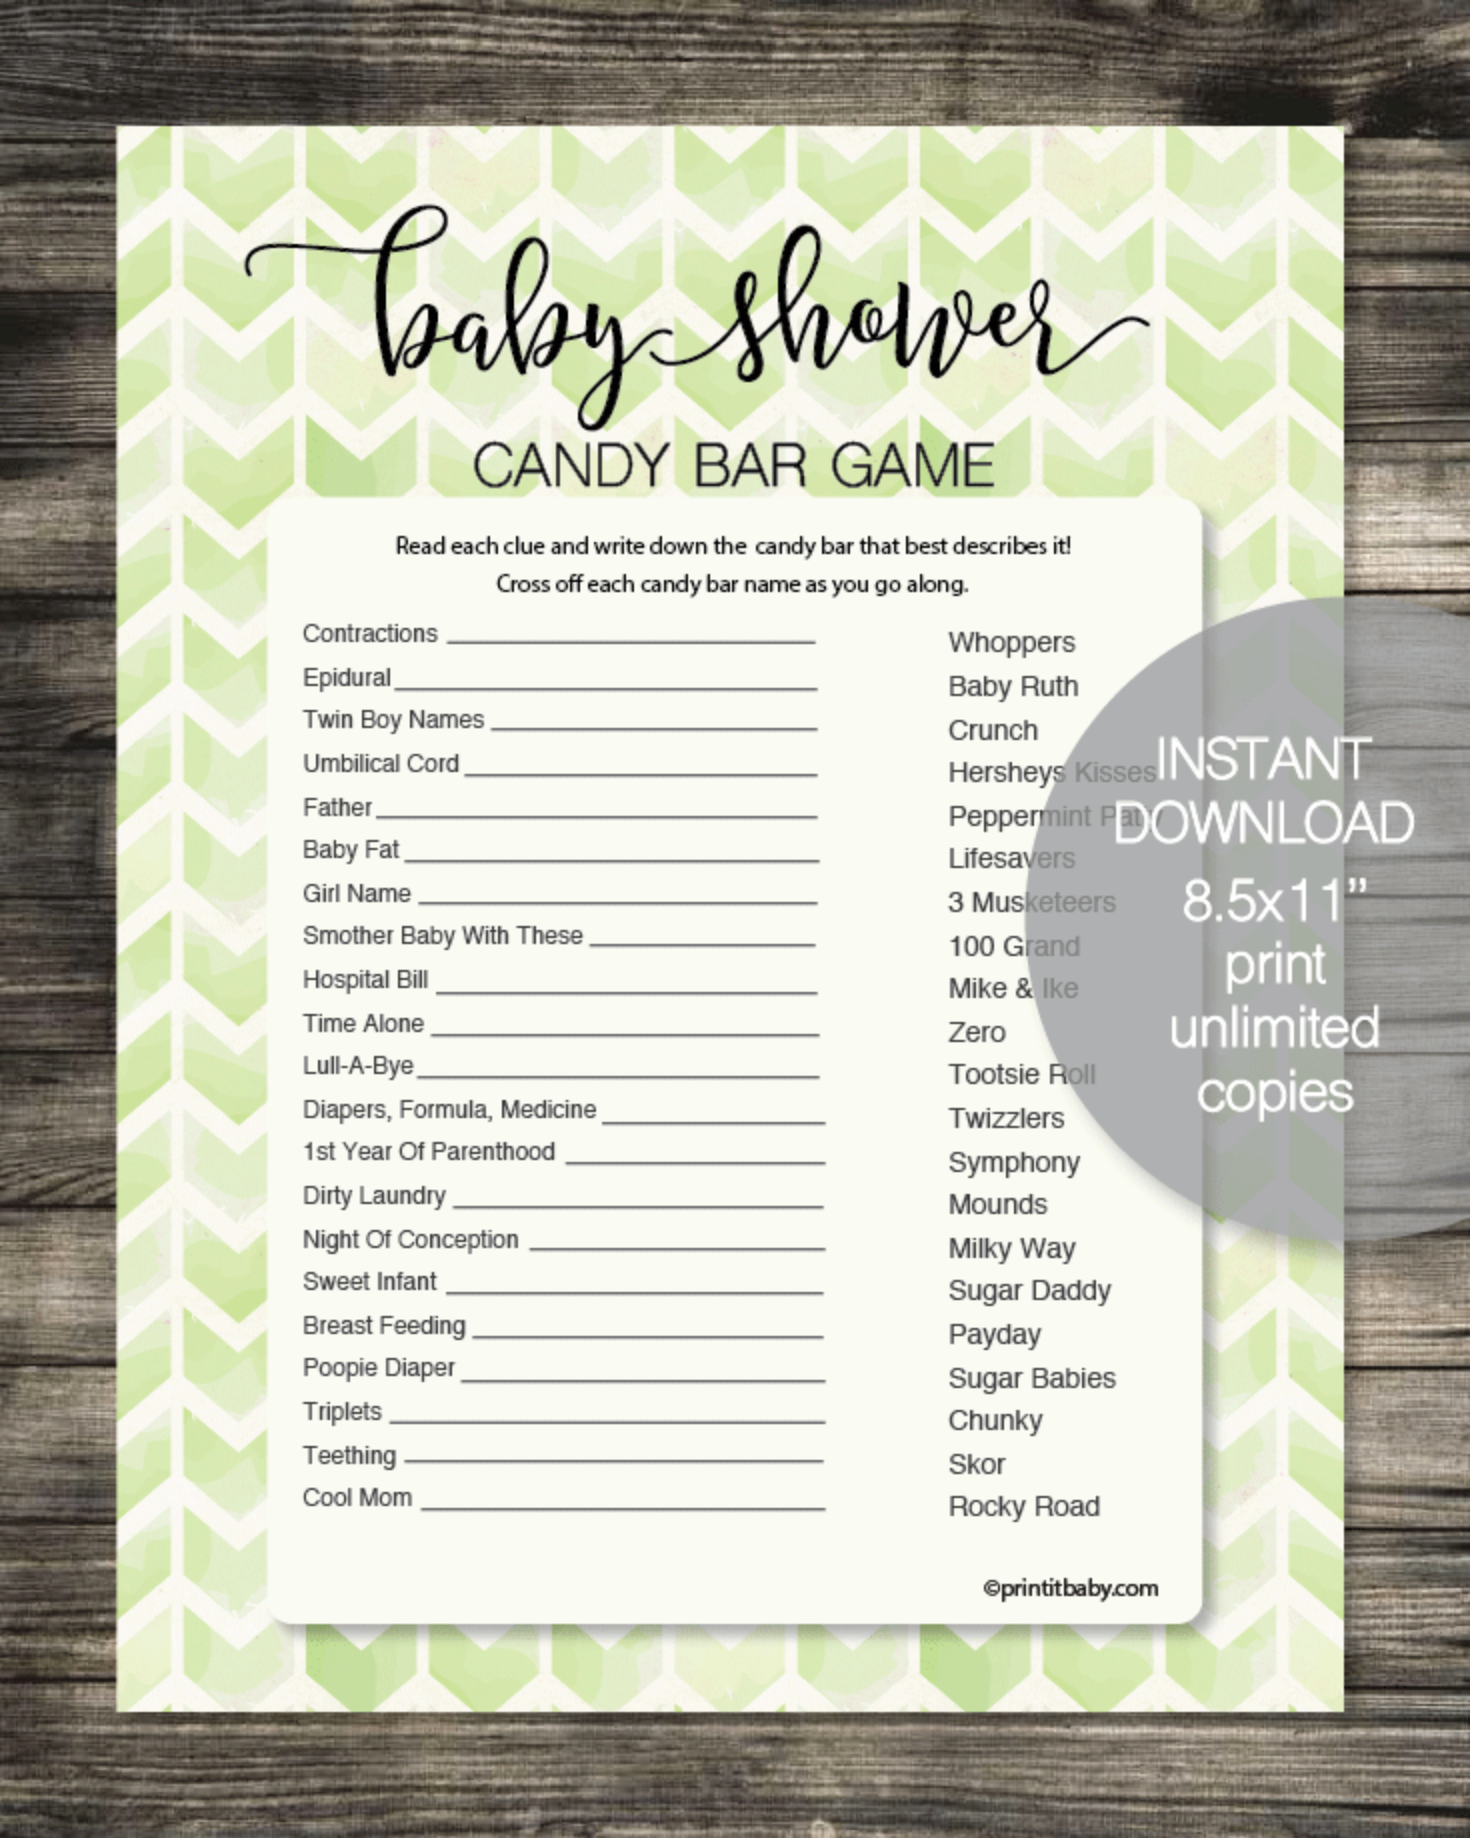 Baby Shower Candy Bar Game - Lime Green Chevron Watercolor Boho Arrows